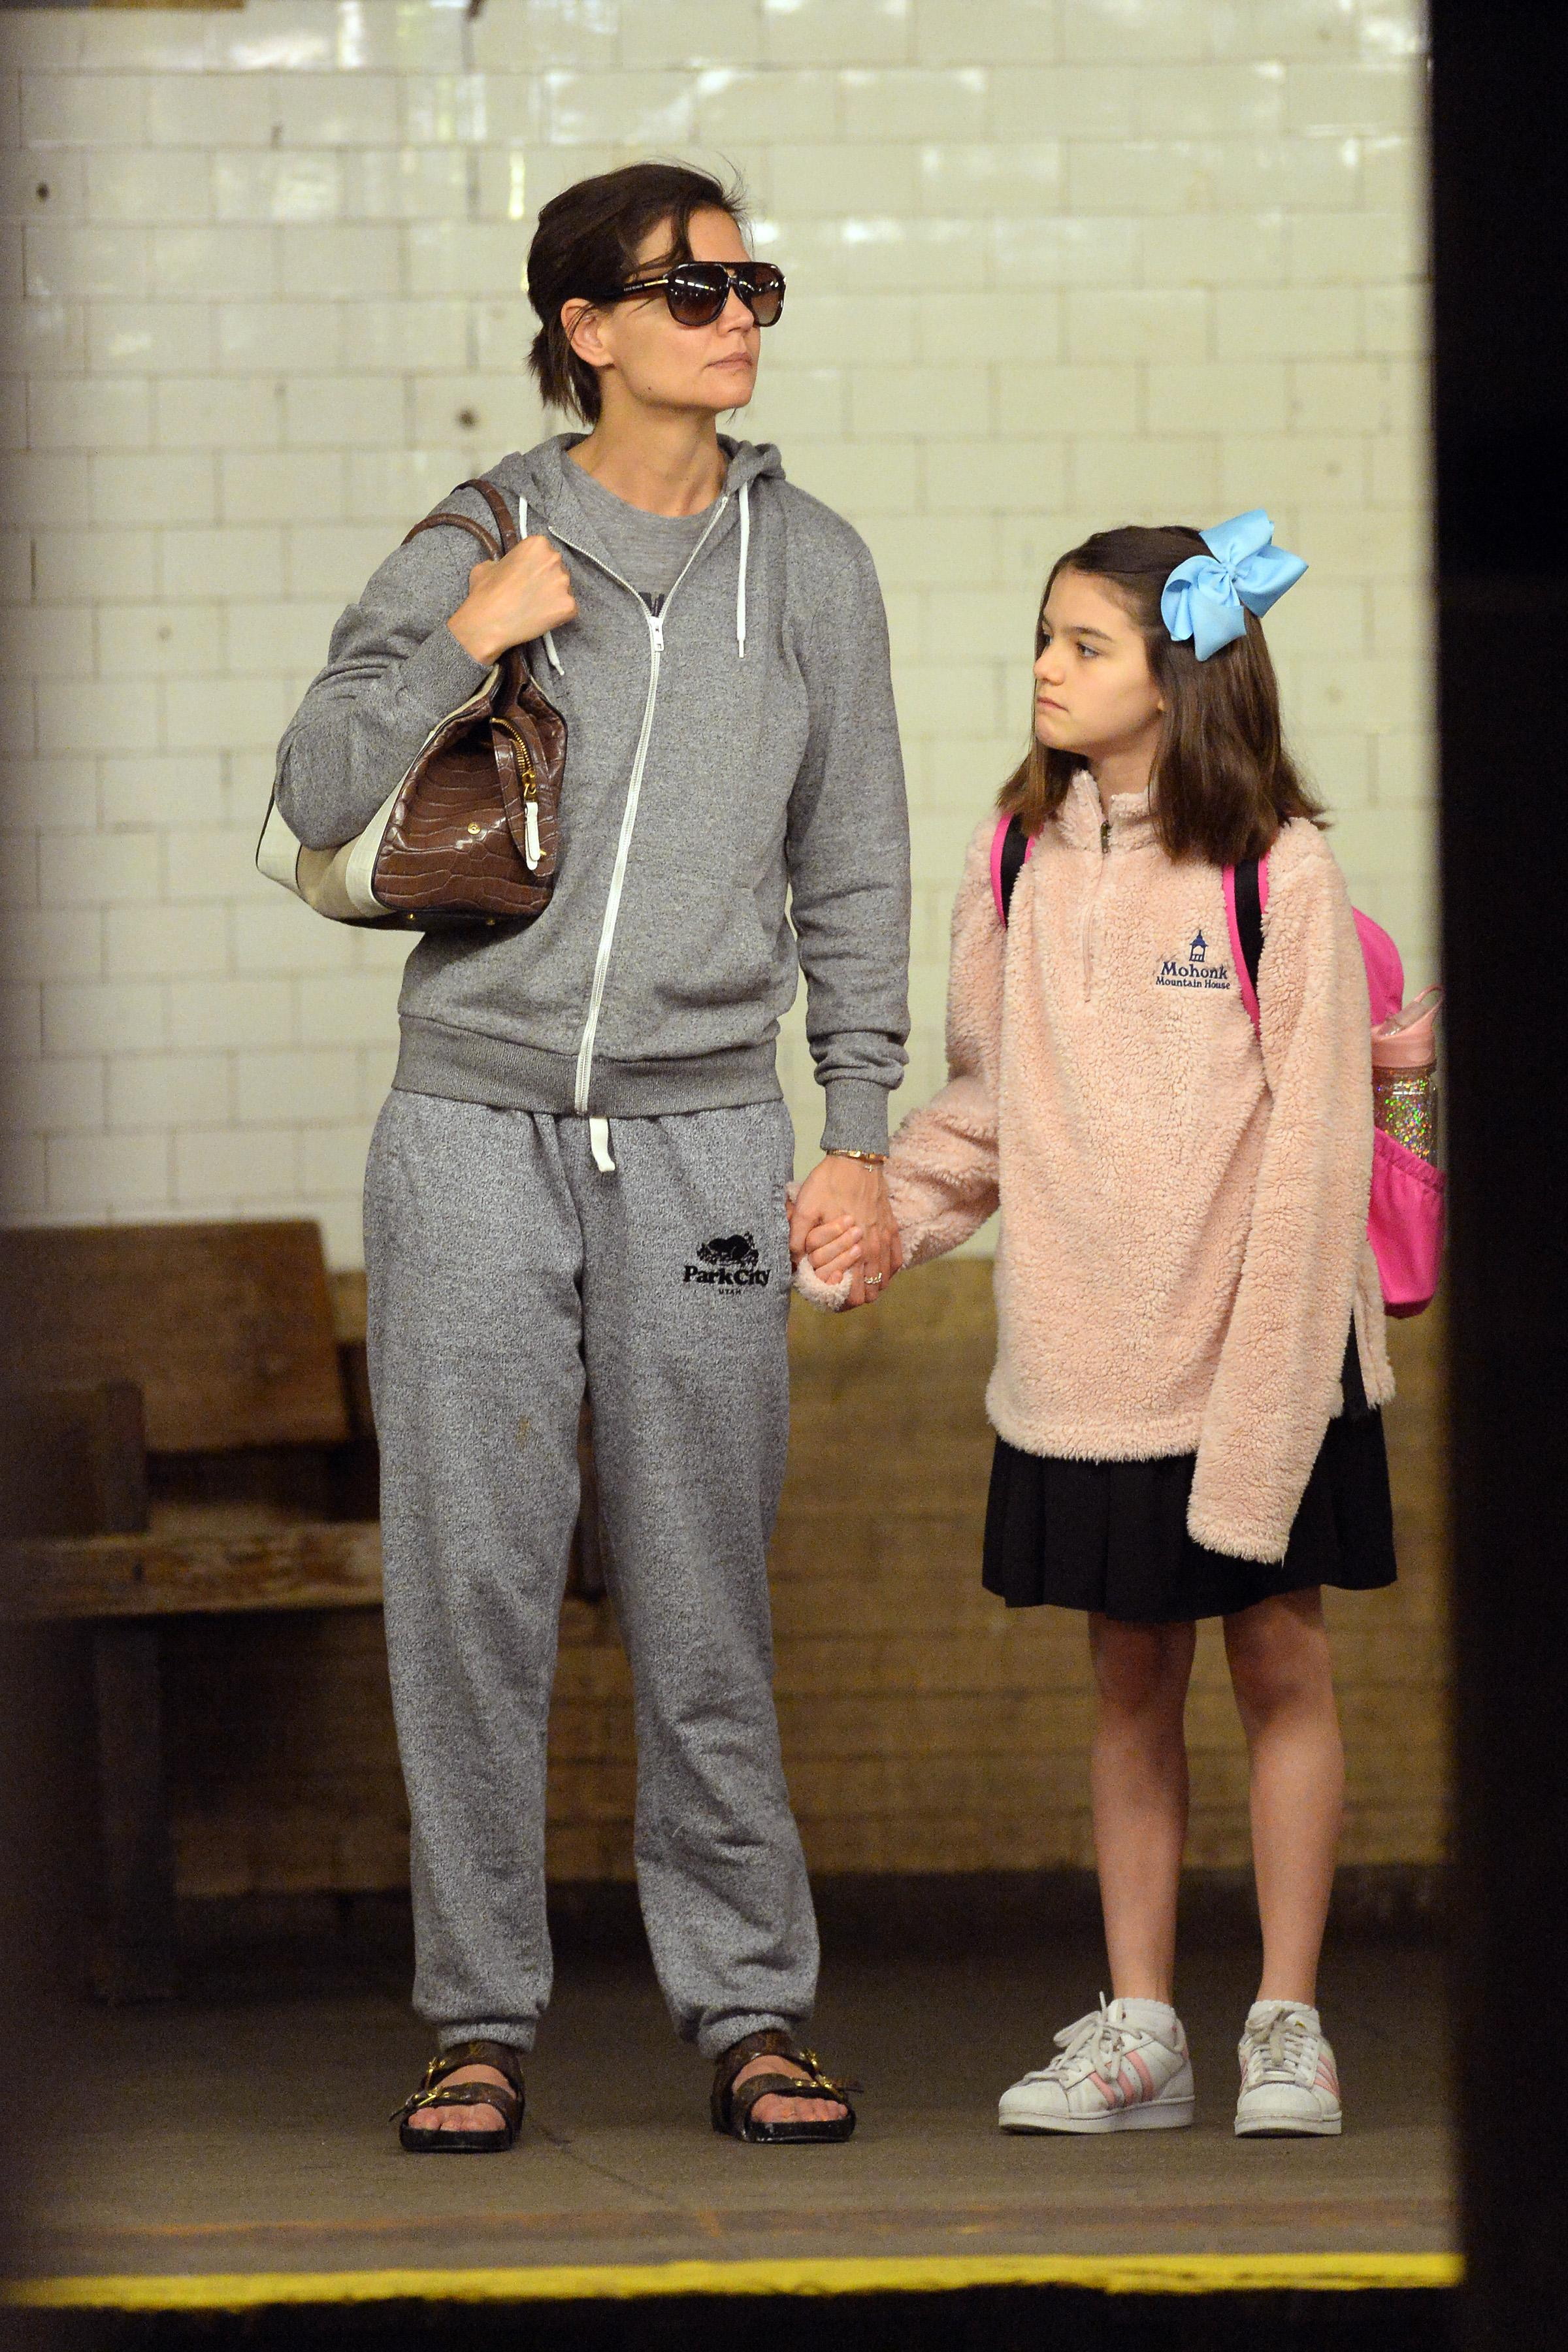 Katie Holmes and daughter Suri Cruise took the New York City subway earlier Monday. (Photo: Splash News)